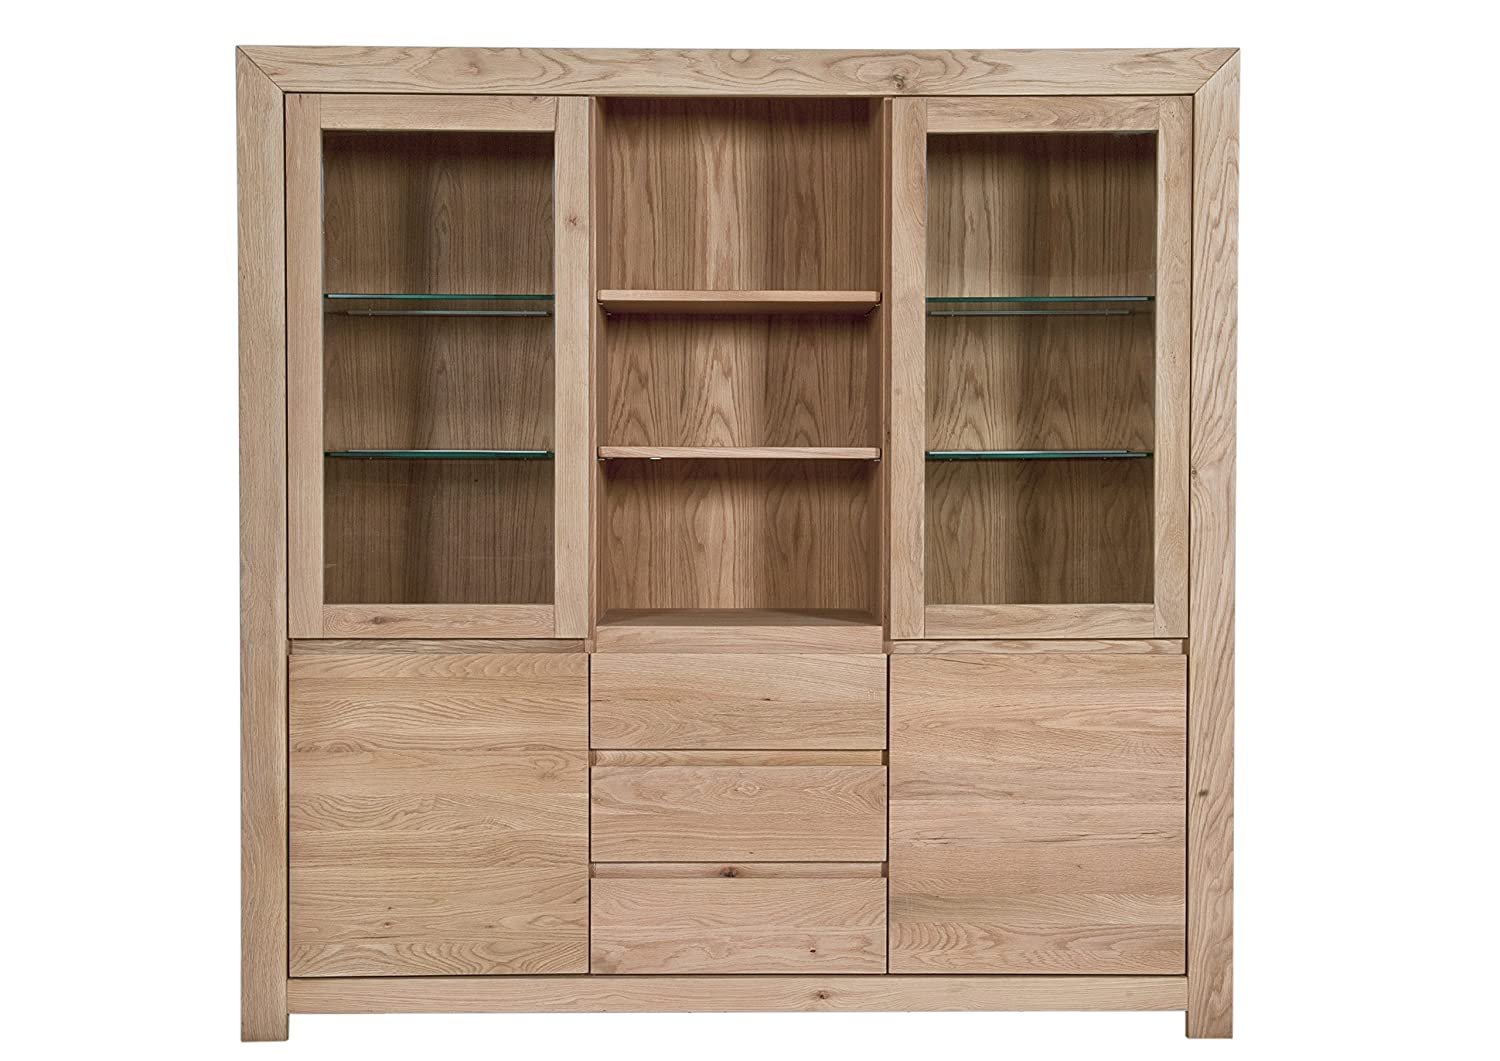 SIT-Möbel 3202-10 Highboard